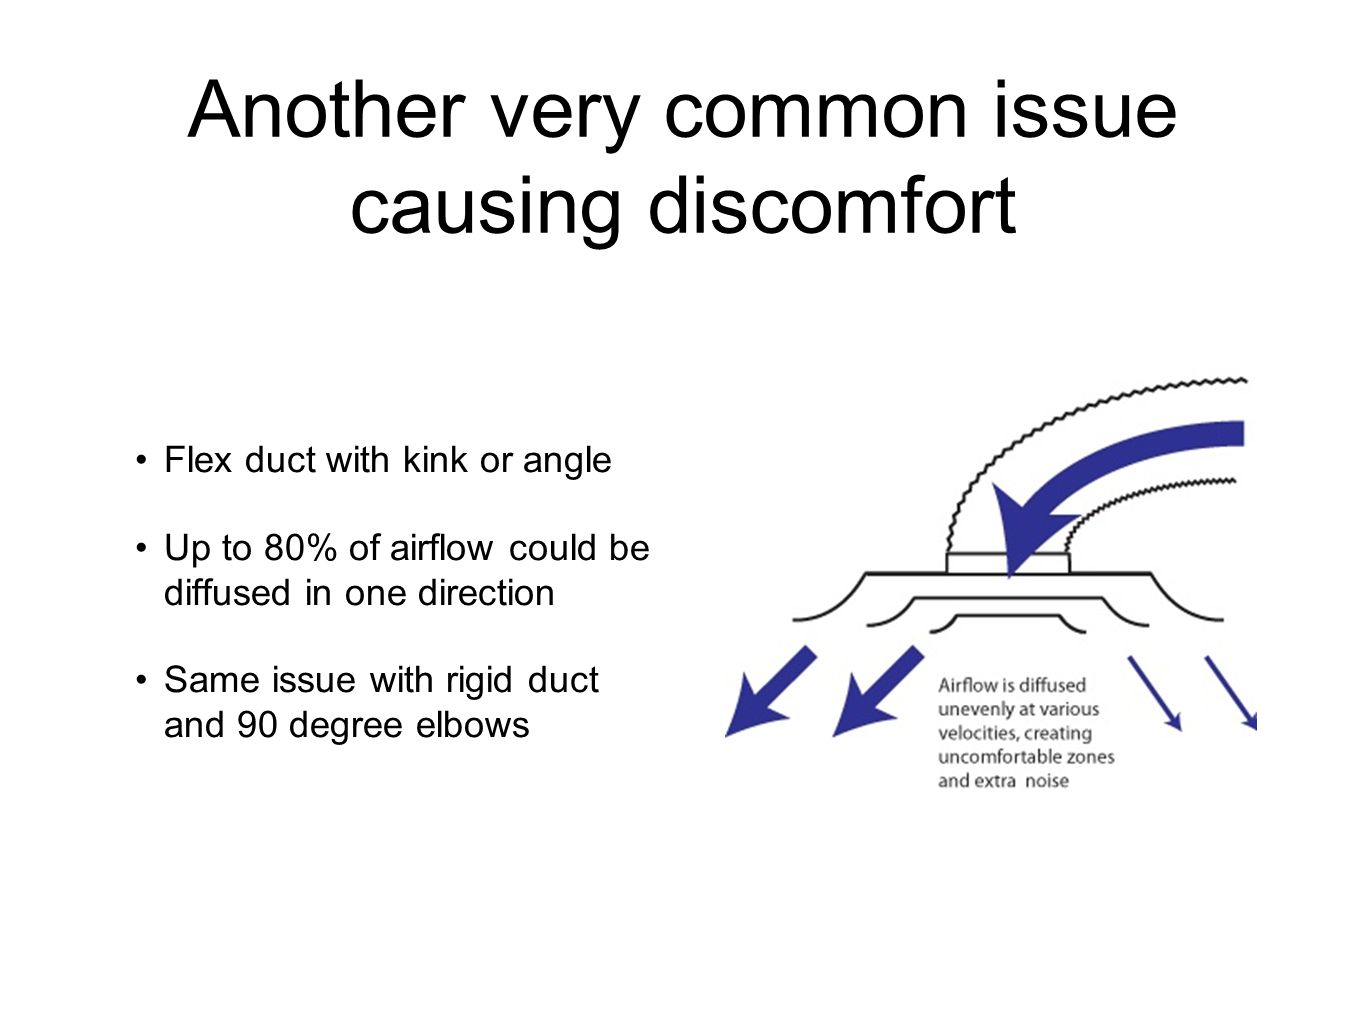 Another very common issue causing discomfort Flex duct with kink or angle Up to 80% of airflow could be diffused in one direction Same issue with rigid duct and 90 degree elbows